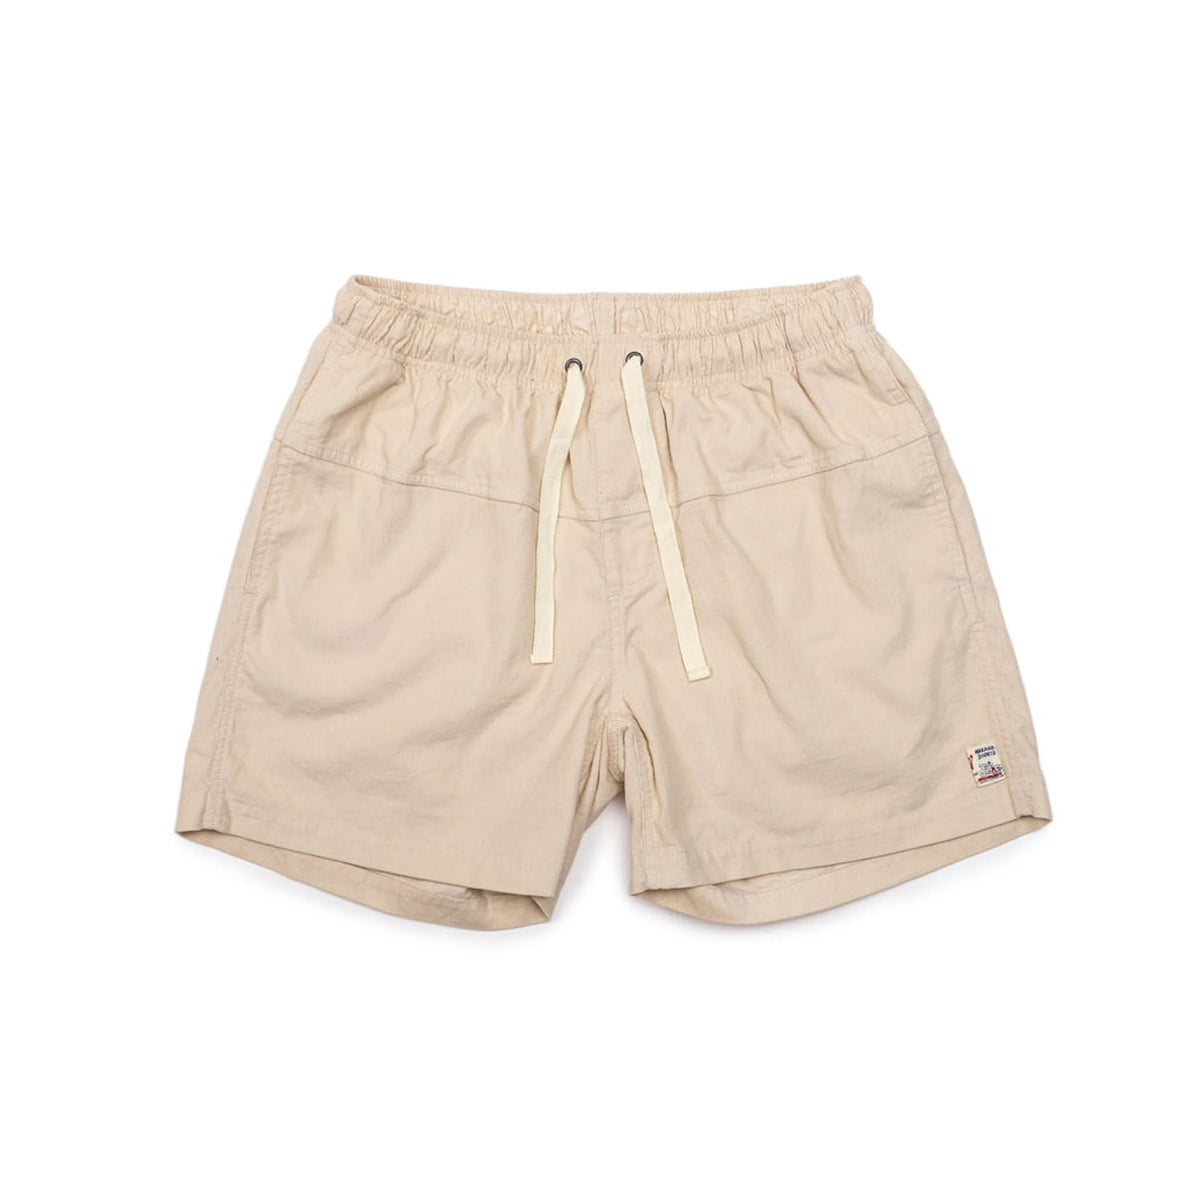 [M.Nii] CORDUROY DROWNER TRUNK 'CREAM'